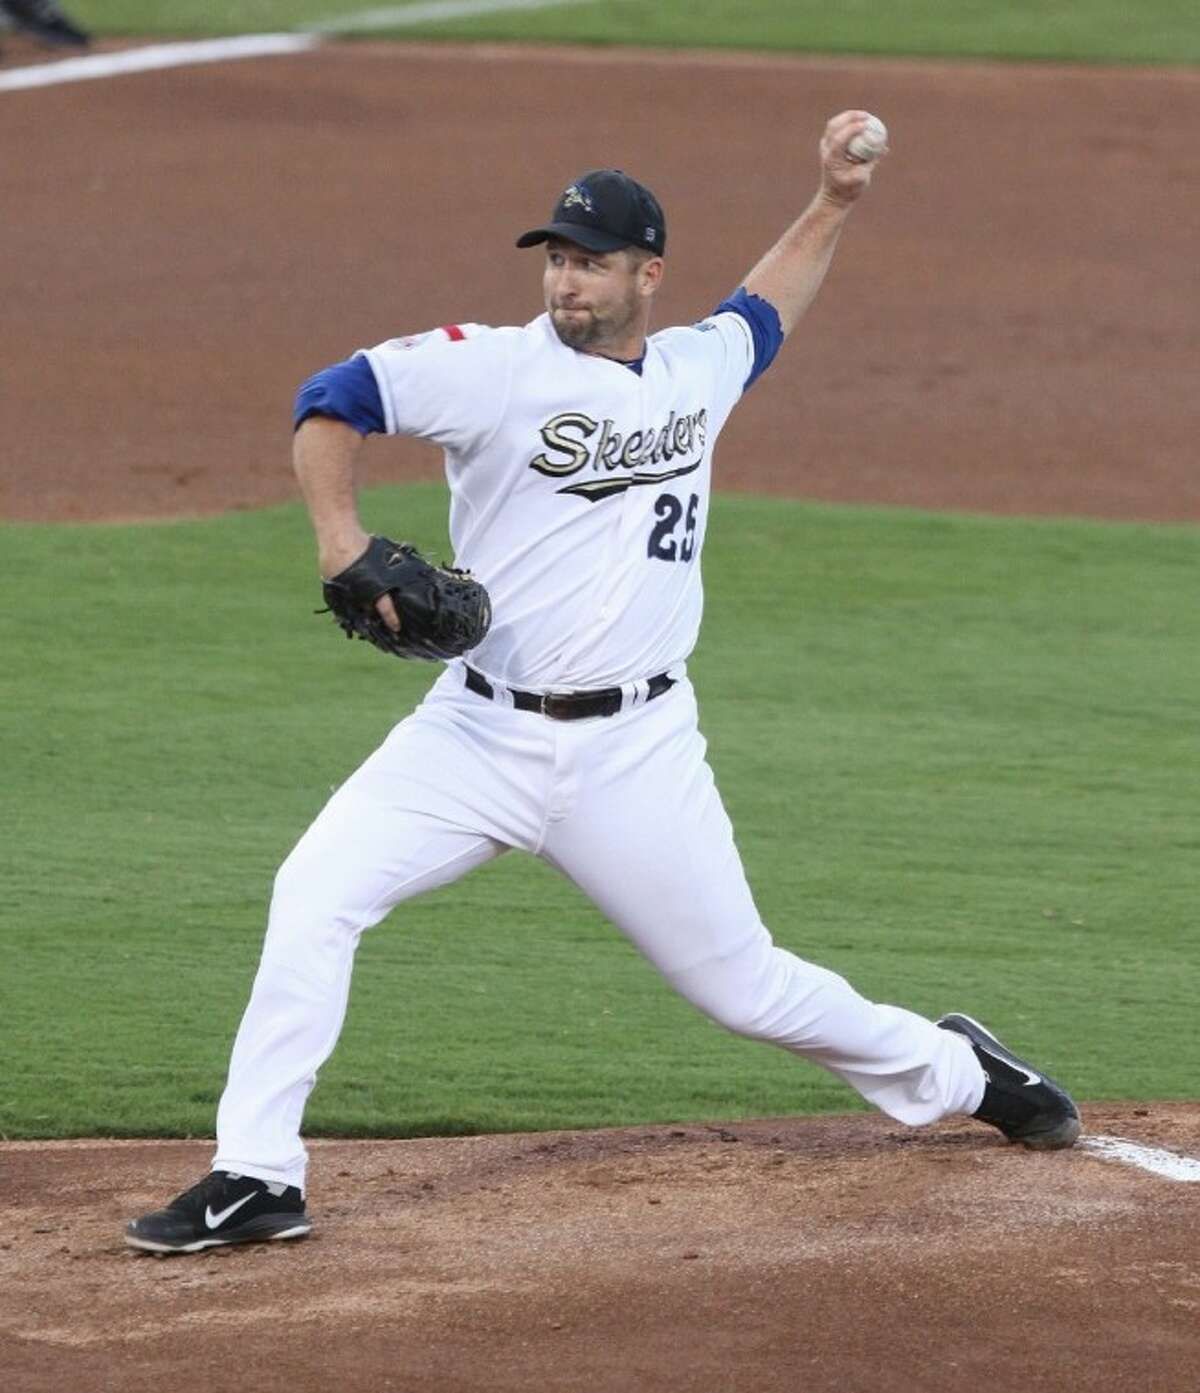 Former Houston Astros outfielder Jason Lane was a rare double threat for the Skeeters, leading the team in pitching victories while compiling an .808 OPS in 229 at-bats.